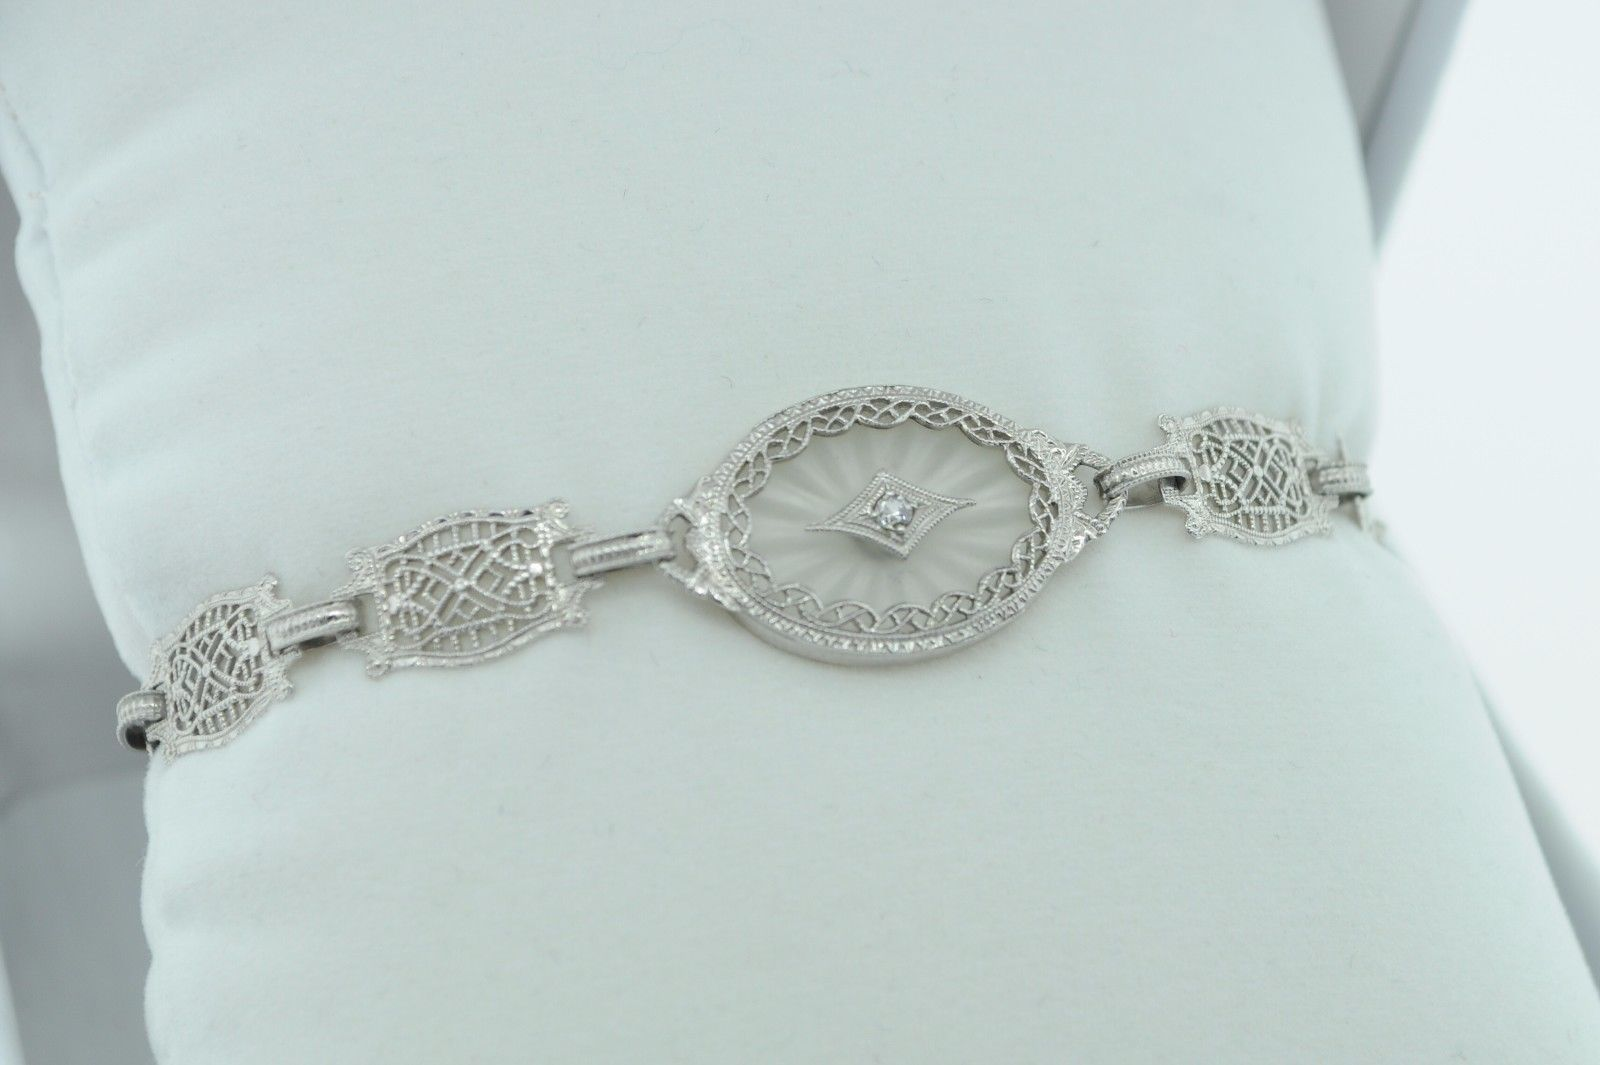 "Art Deco (ca. 1930) 10K White Gold Diamond & Etched Glass Bracelet (6 3/4"") image 5"